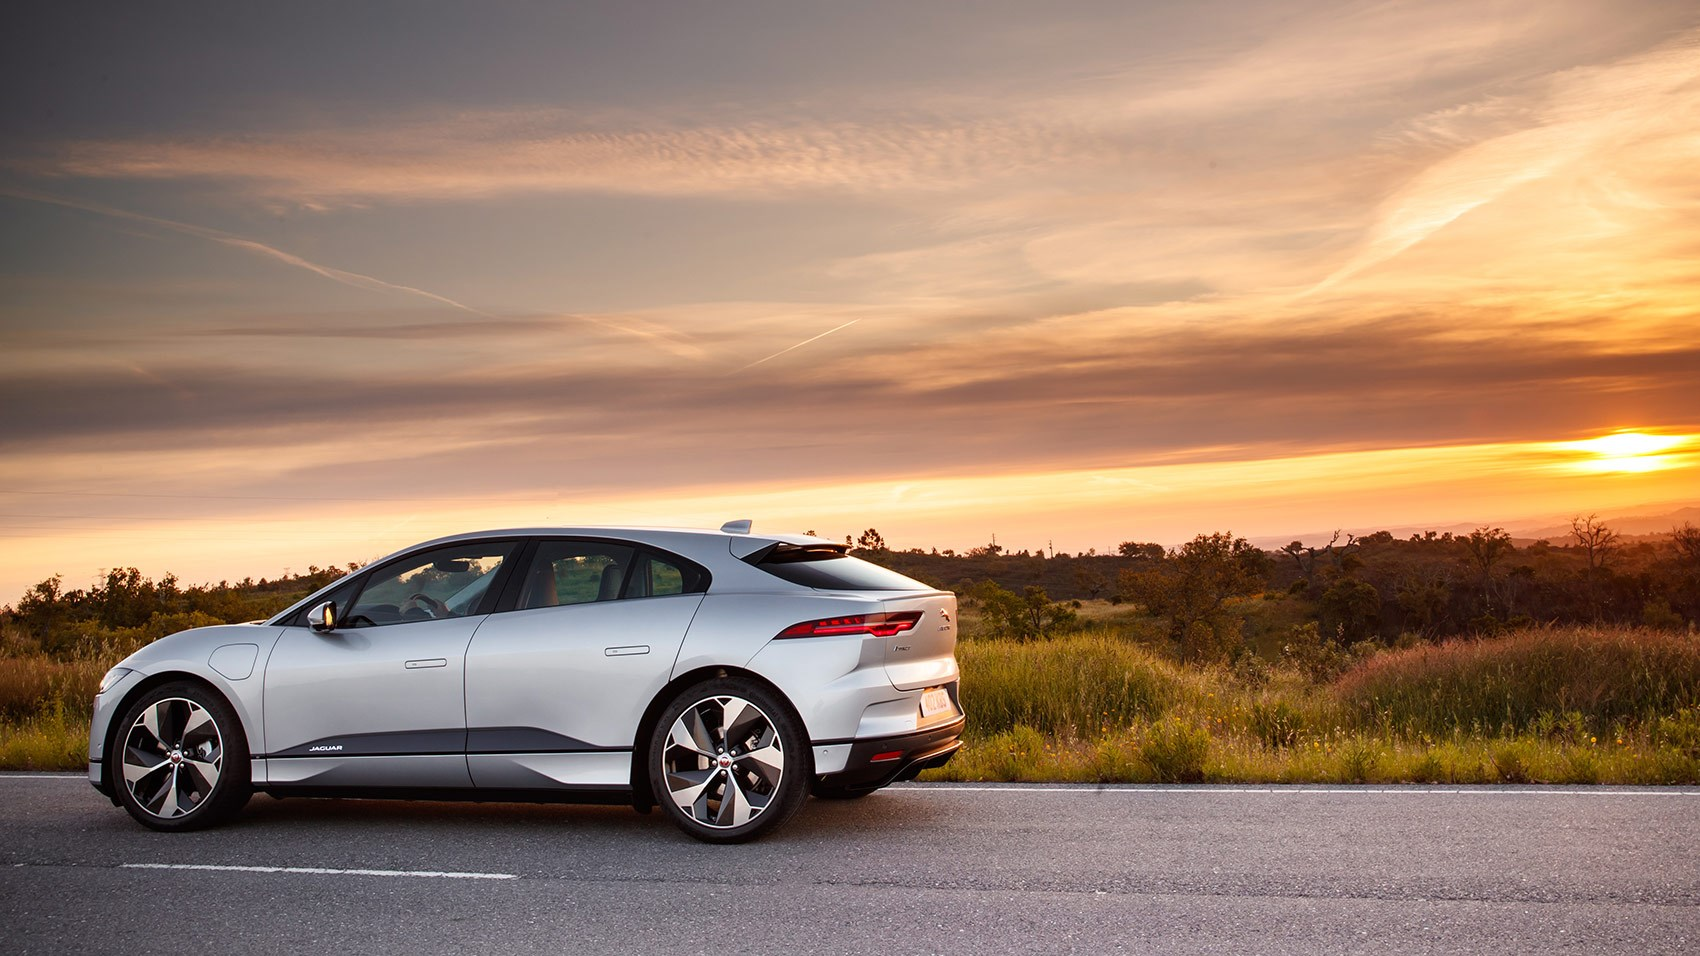 Jaguar I-Pace (2018) Review: Specs, Prices, Pictures, On